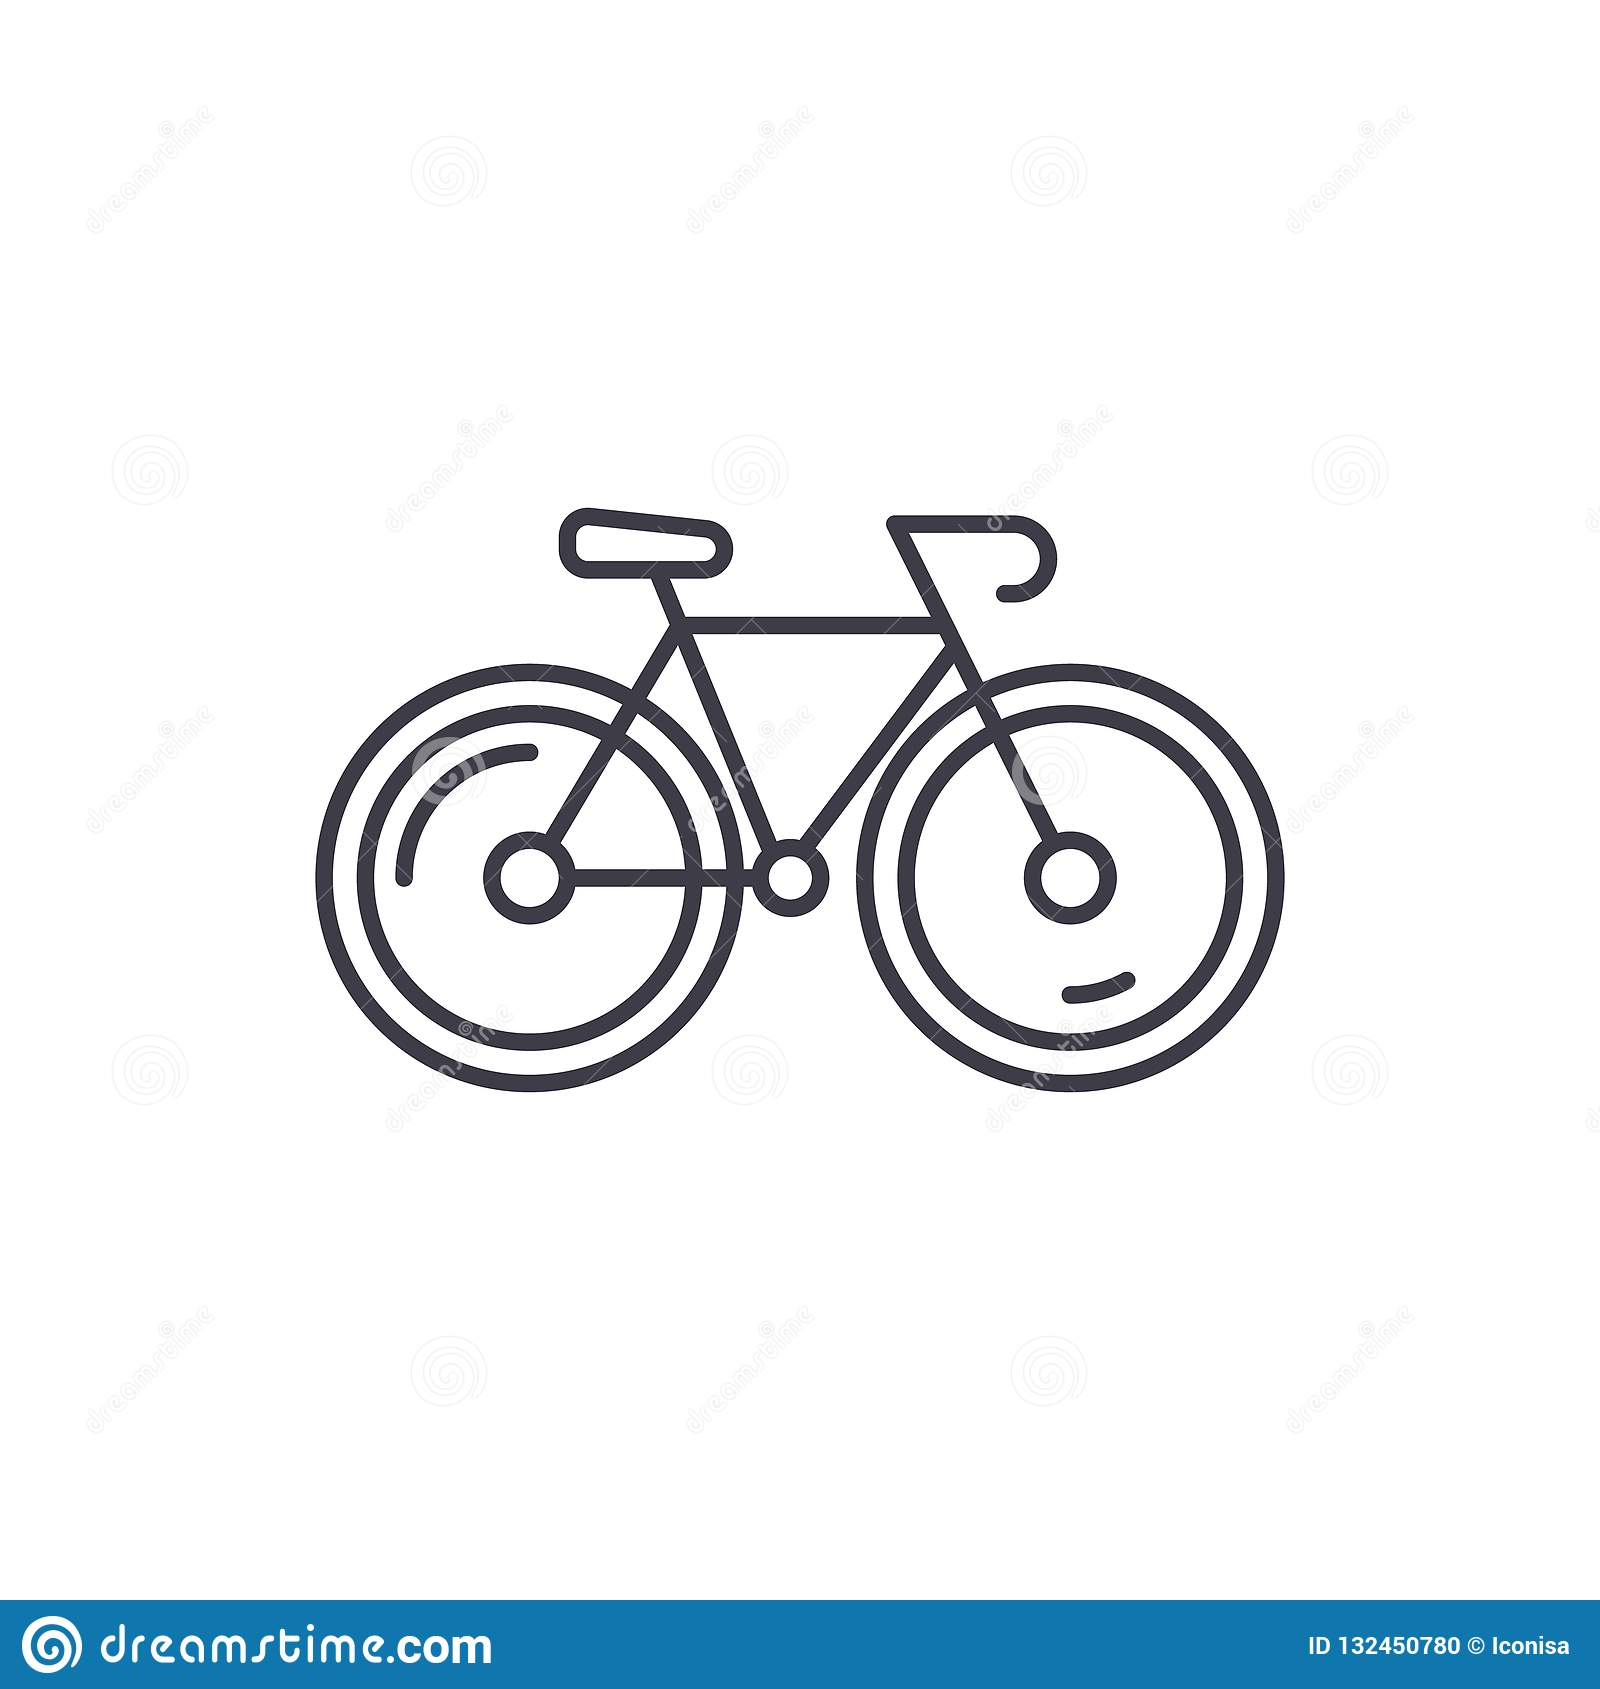 Bicycle line icon concept. Bicycle vector linear illustration, symbol, sign